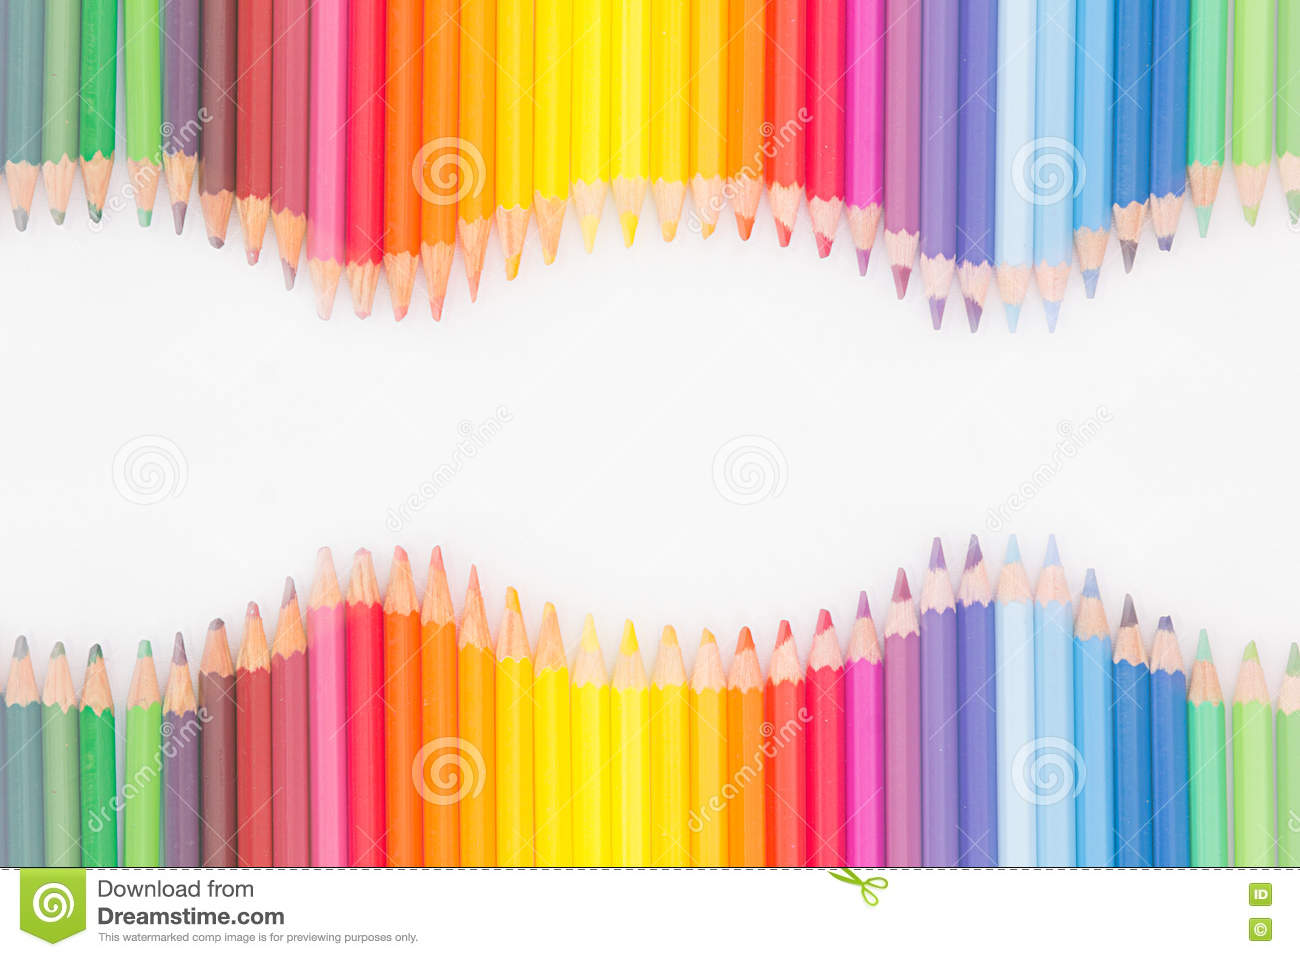 Rainbow colors in order pictures - Colored Pencils In Rainbow Order On White Background Royalty Free Stock Photography